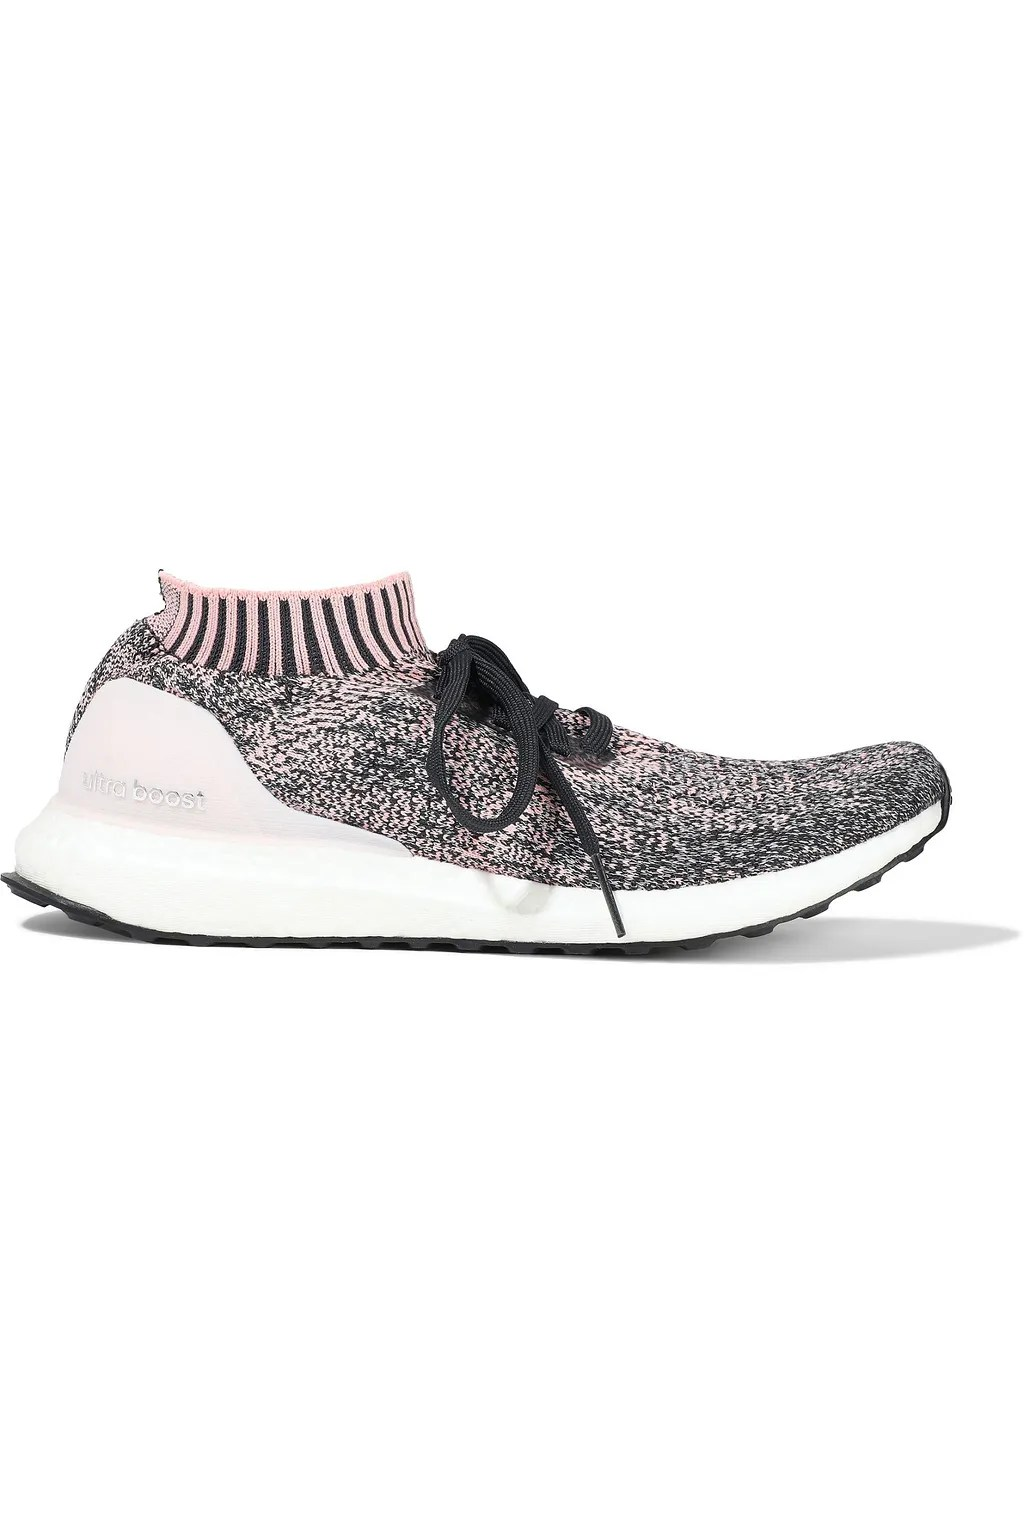 Baby pink UltraBOOST Uncaged coated marled stretch-knit